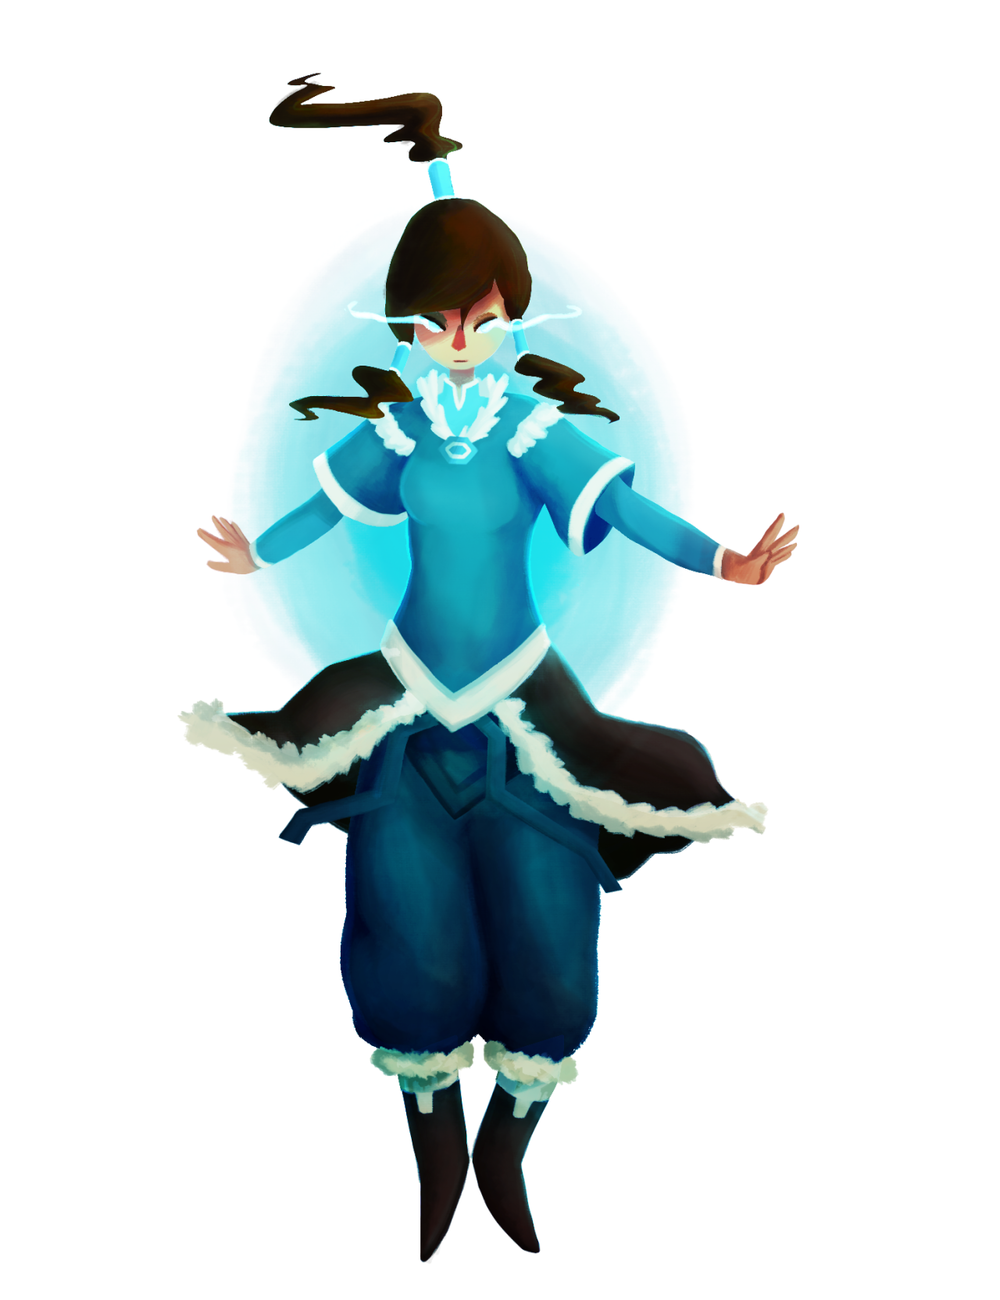 #311 Finished Korra in avatar state